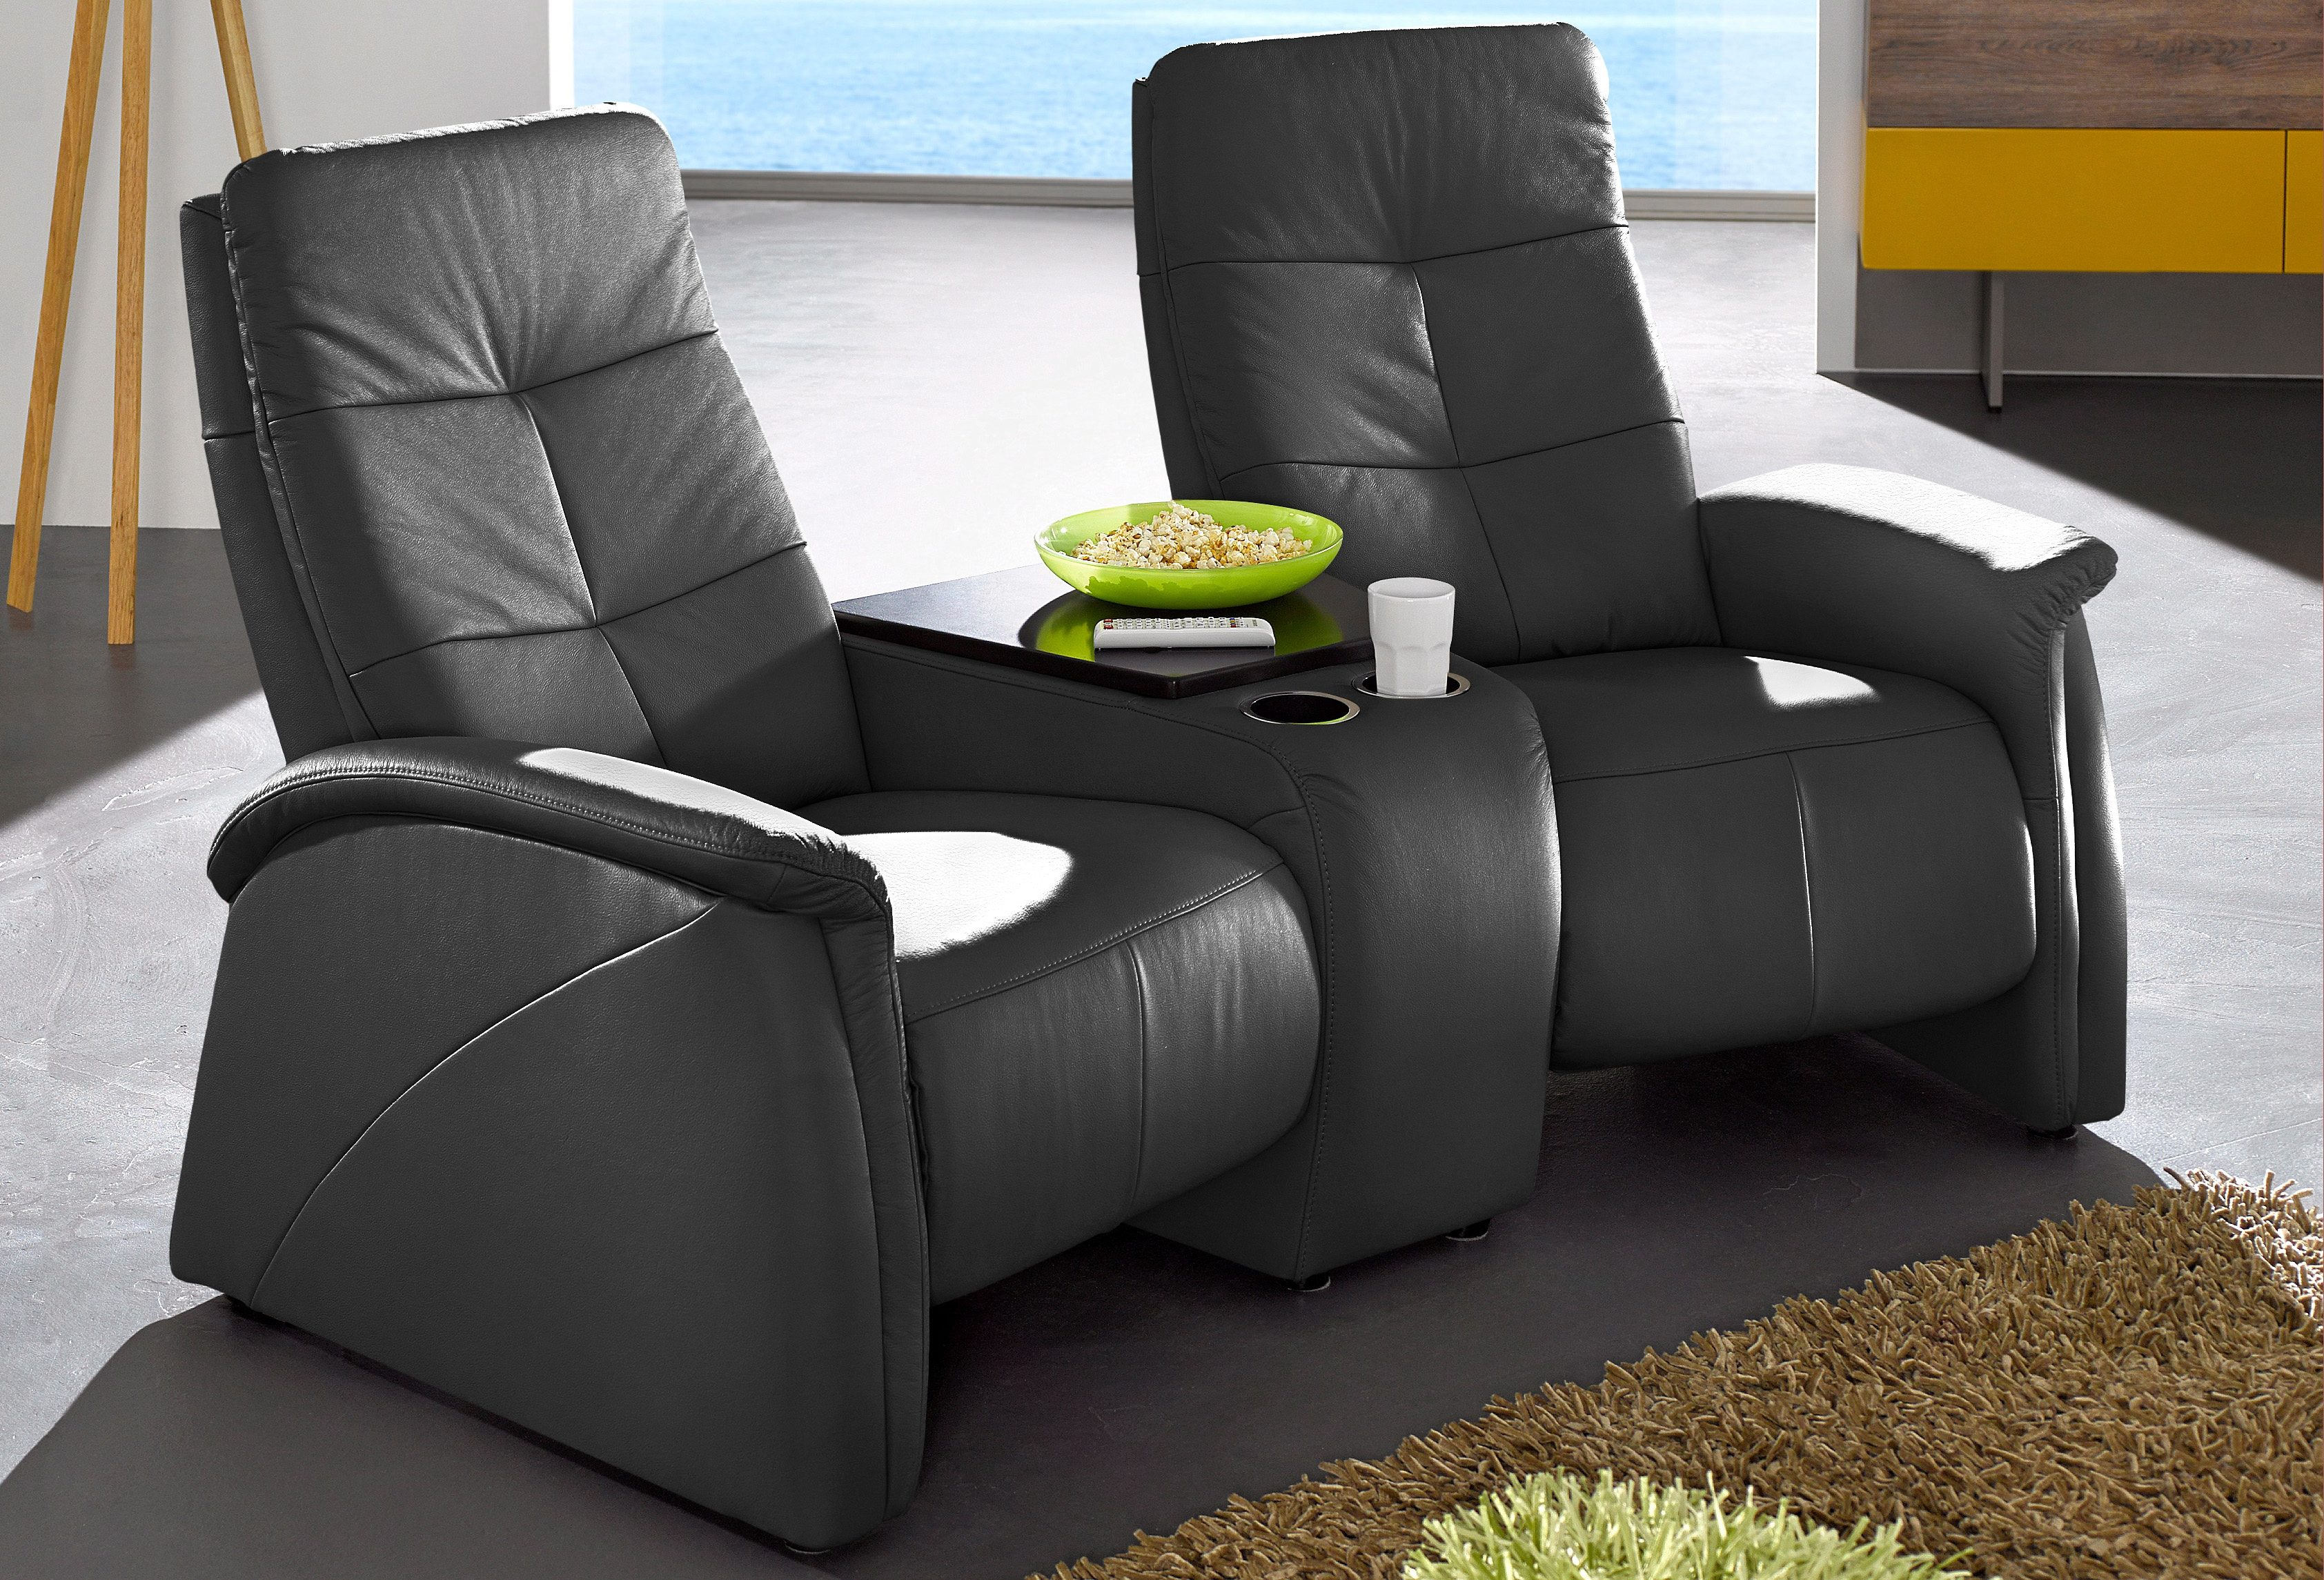 2er Sessel 2-sitzer, City Sofa, Mit Relaxfunktion Kaufen | Otto